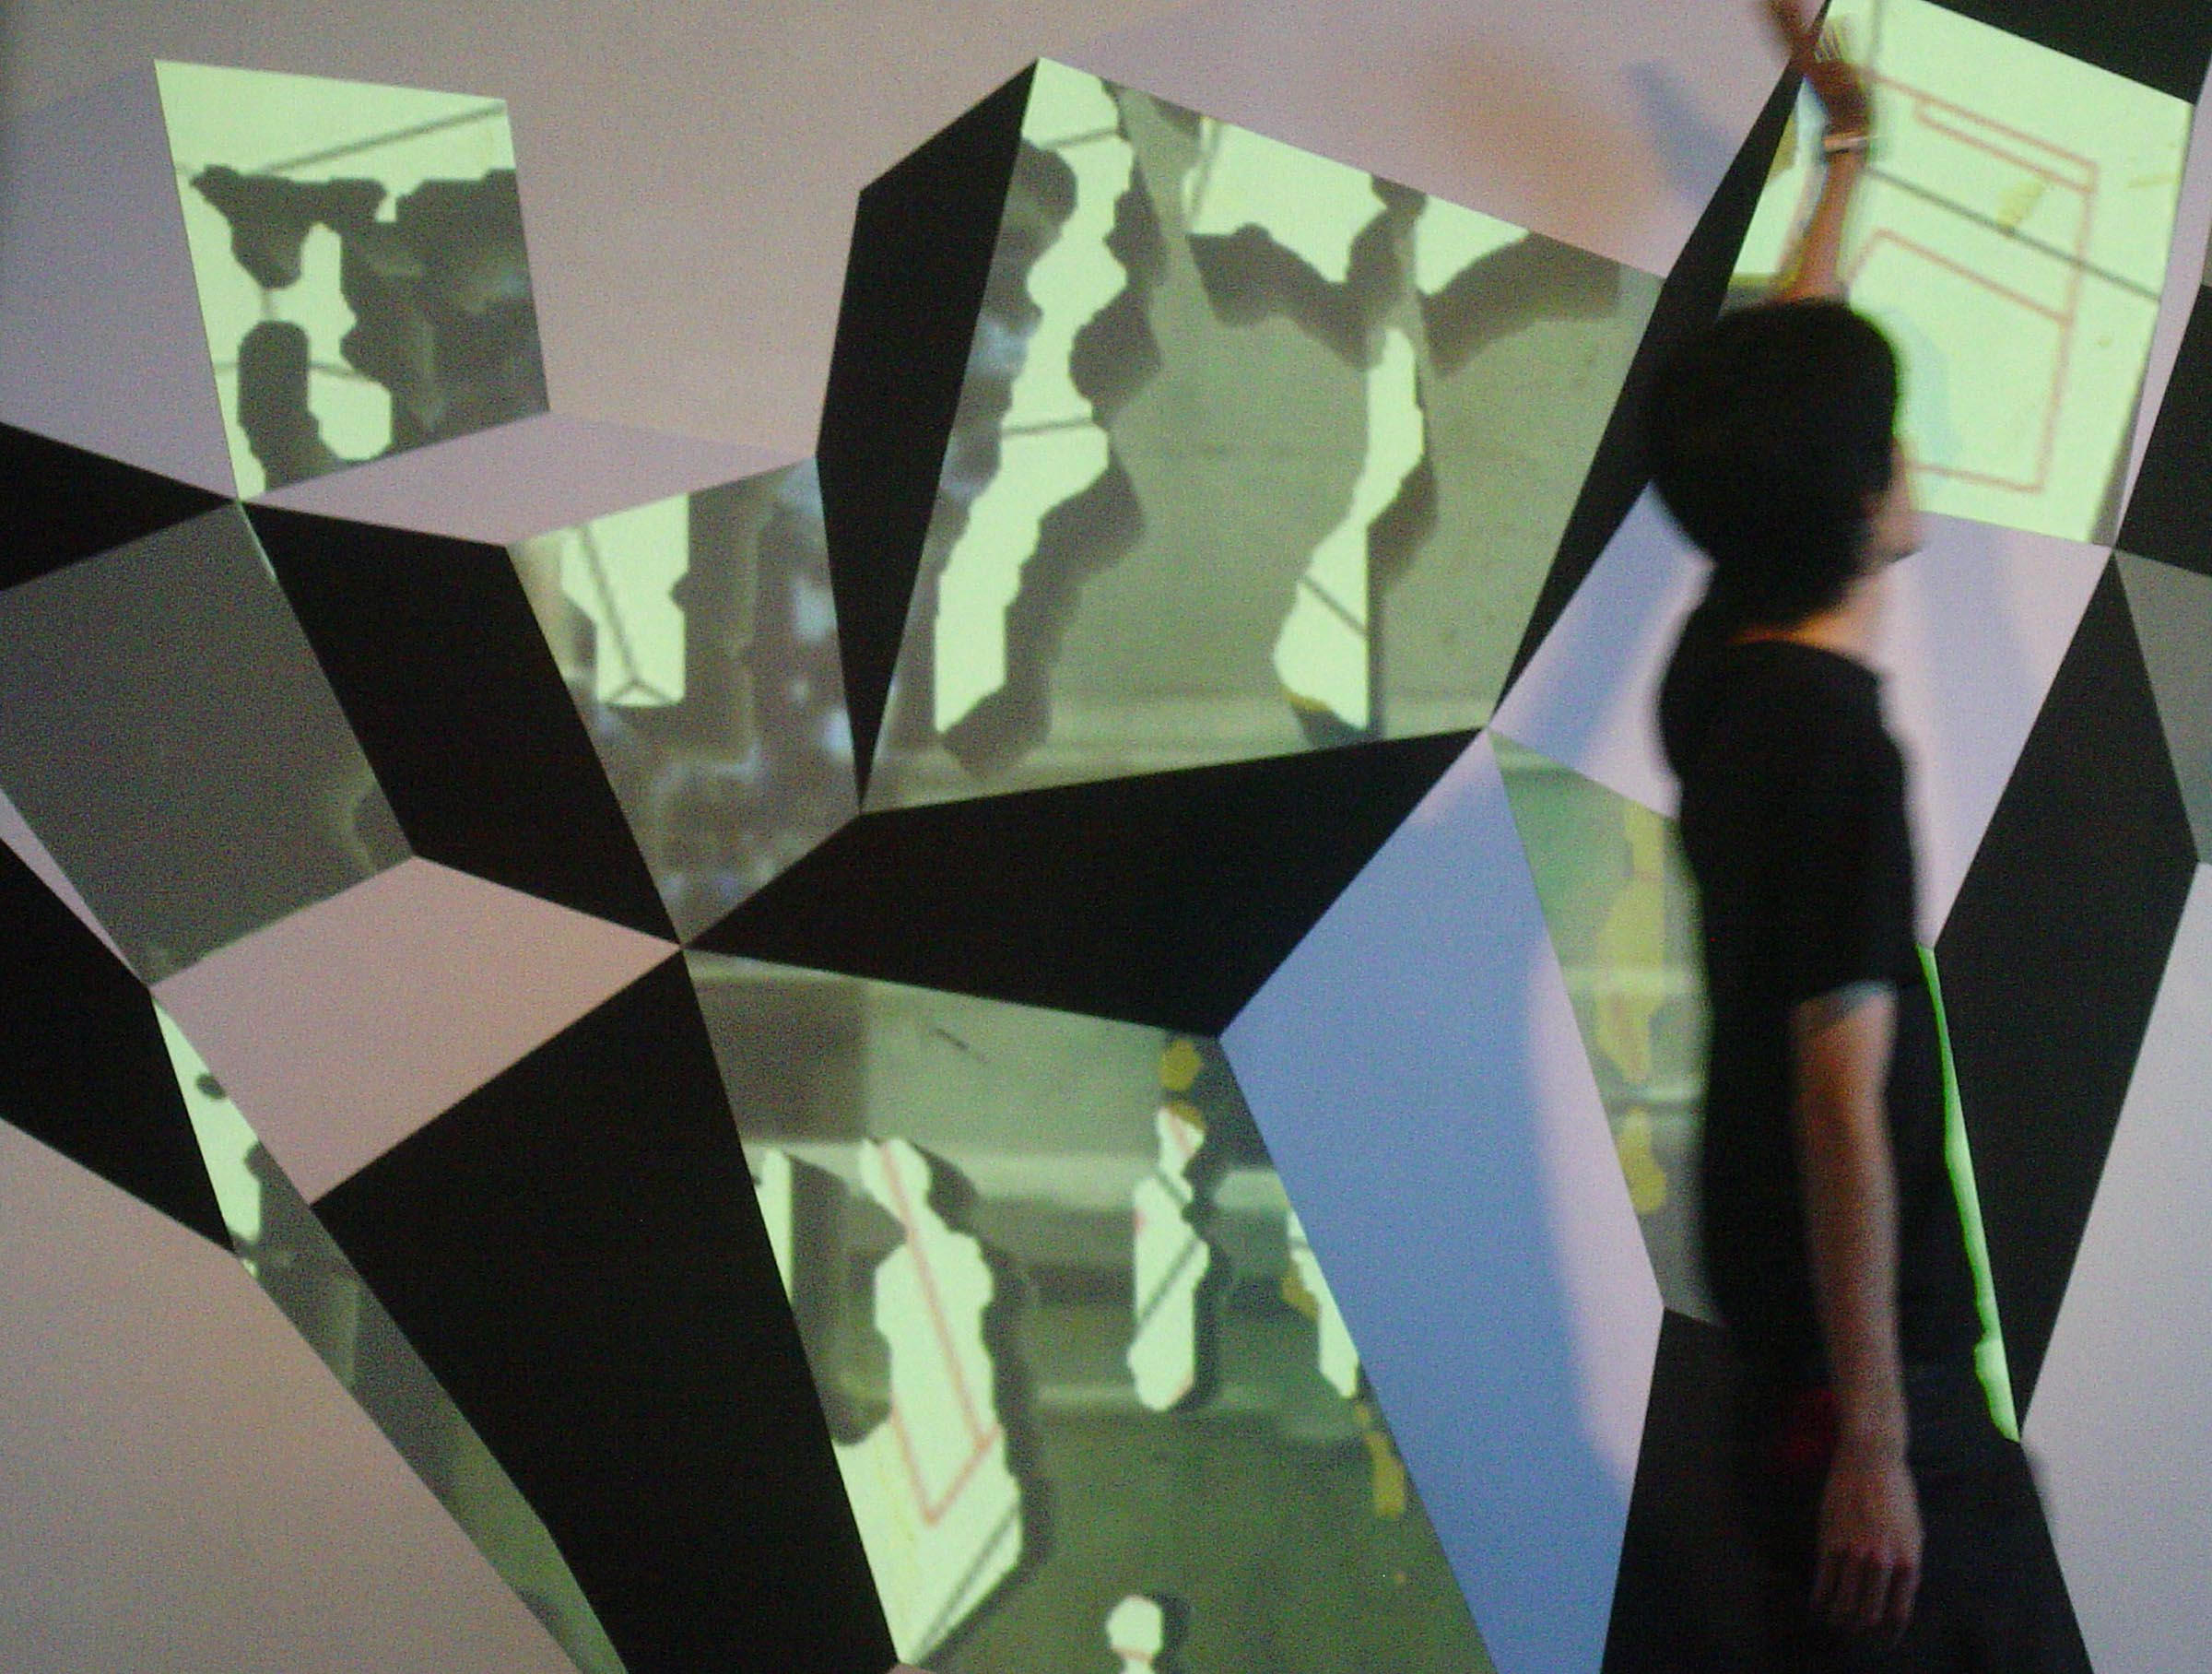 Fig.15 - Interactive RPT Wall Installation Nathan Cohen Ars Electronica Linz 2008: figure moving in front of installation triggering second video projection layer as seen through projector